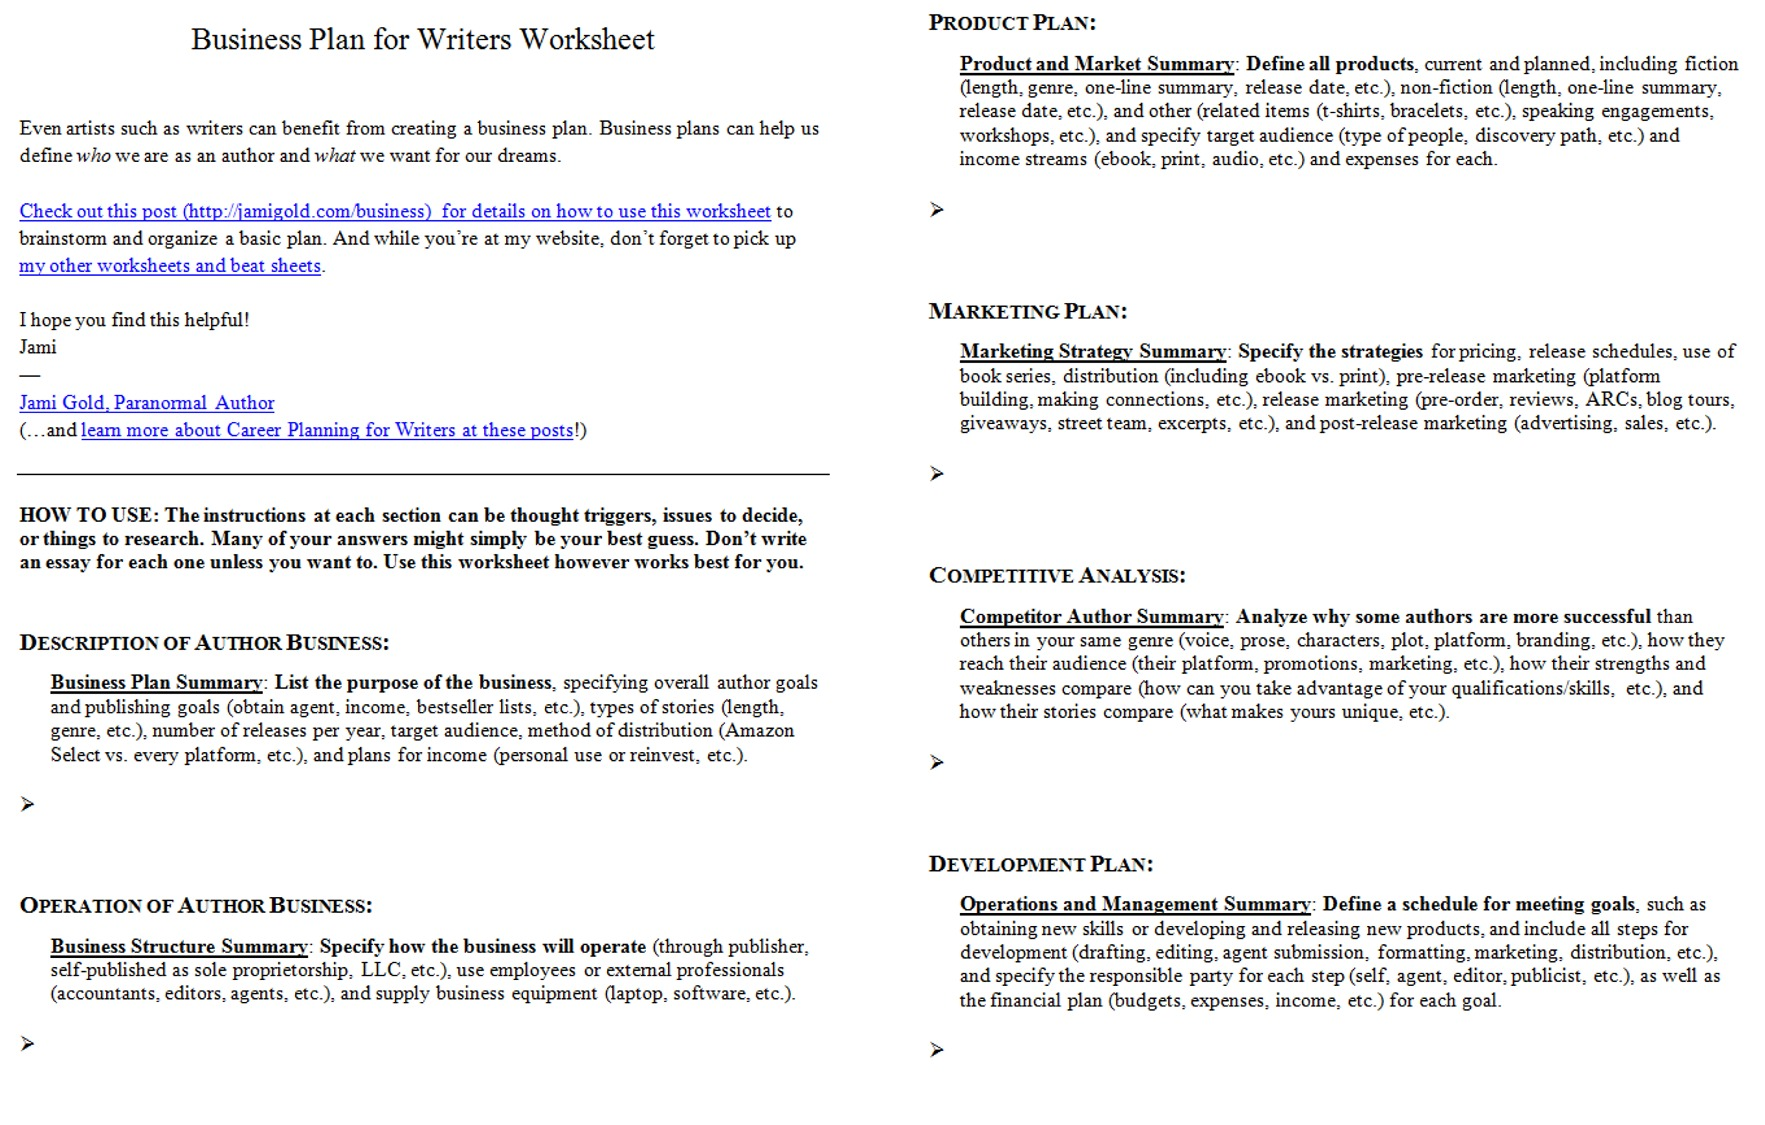 Introducing The Business Plan For Writers Worksheet